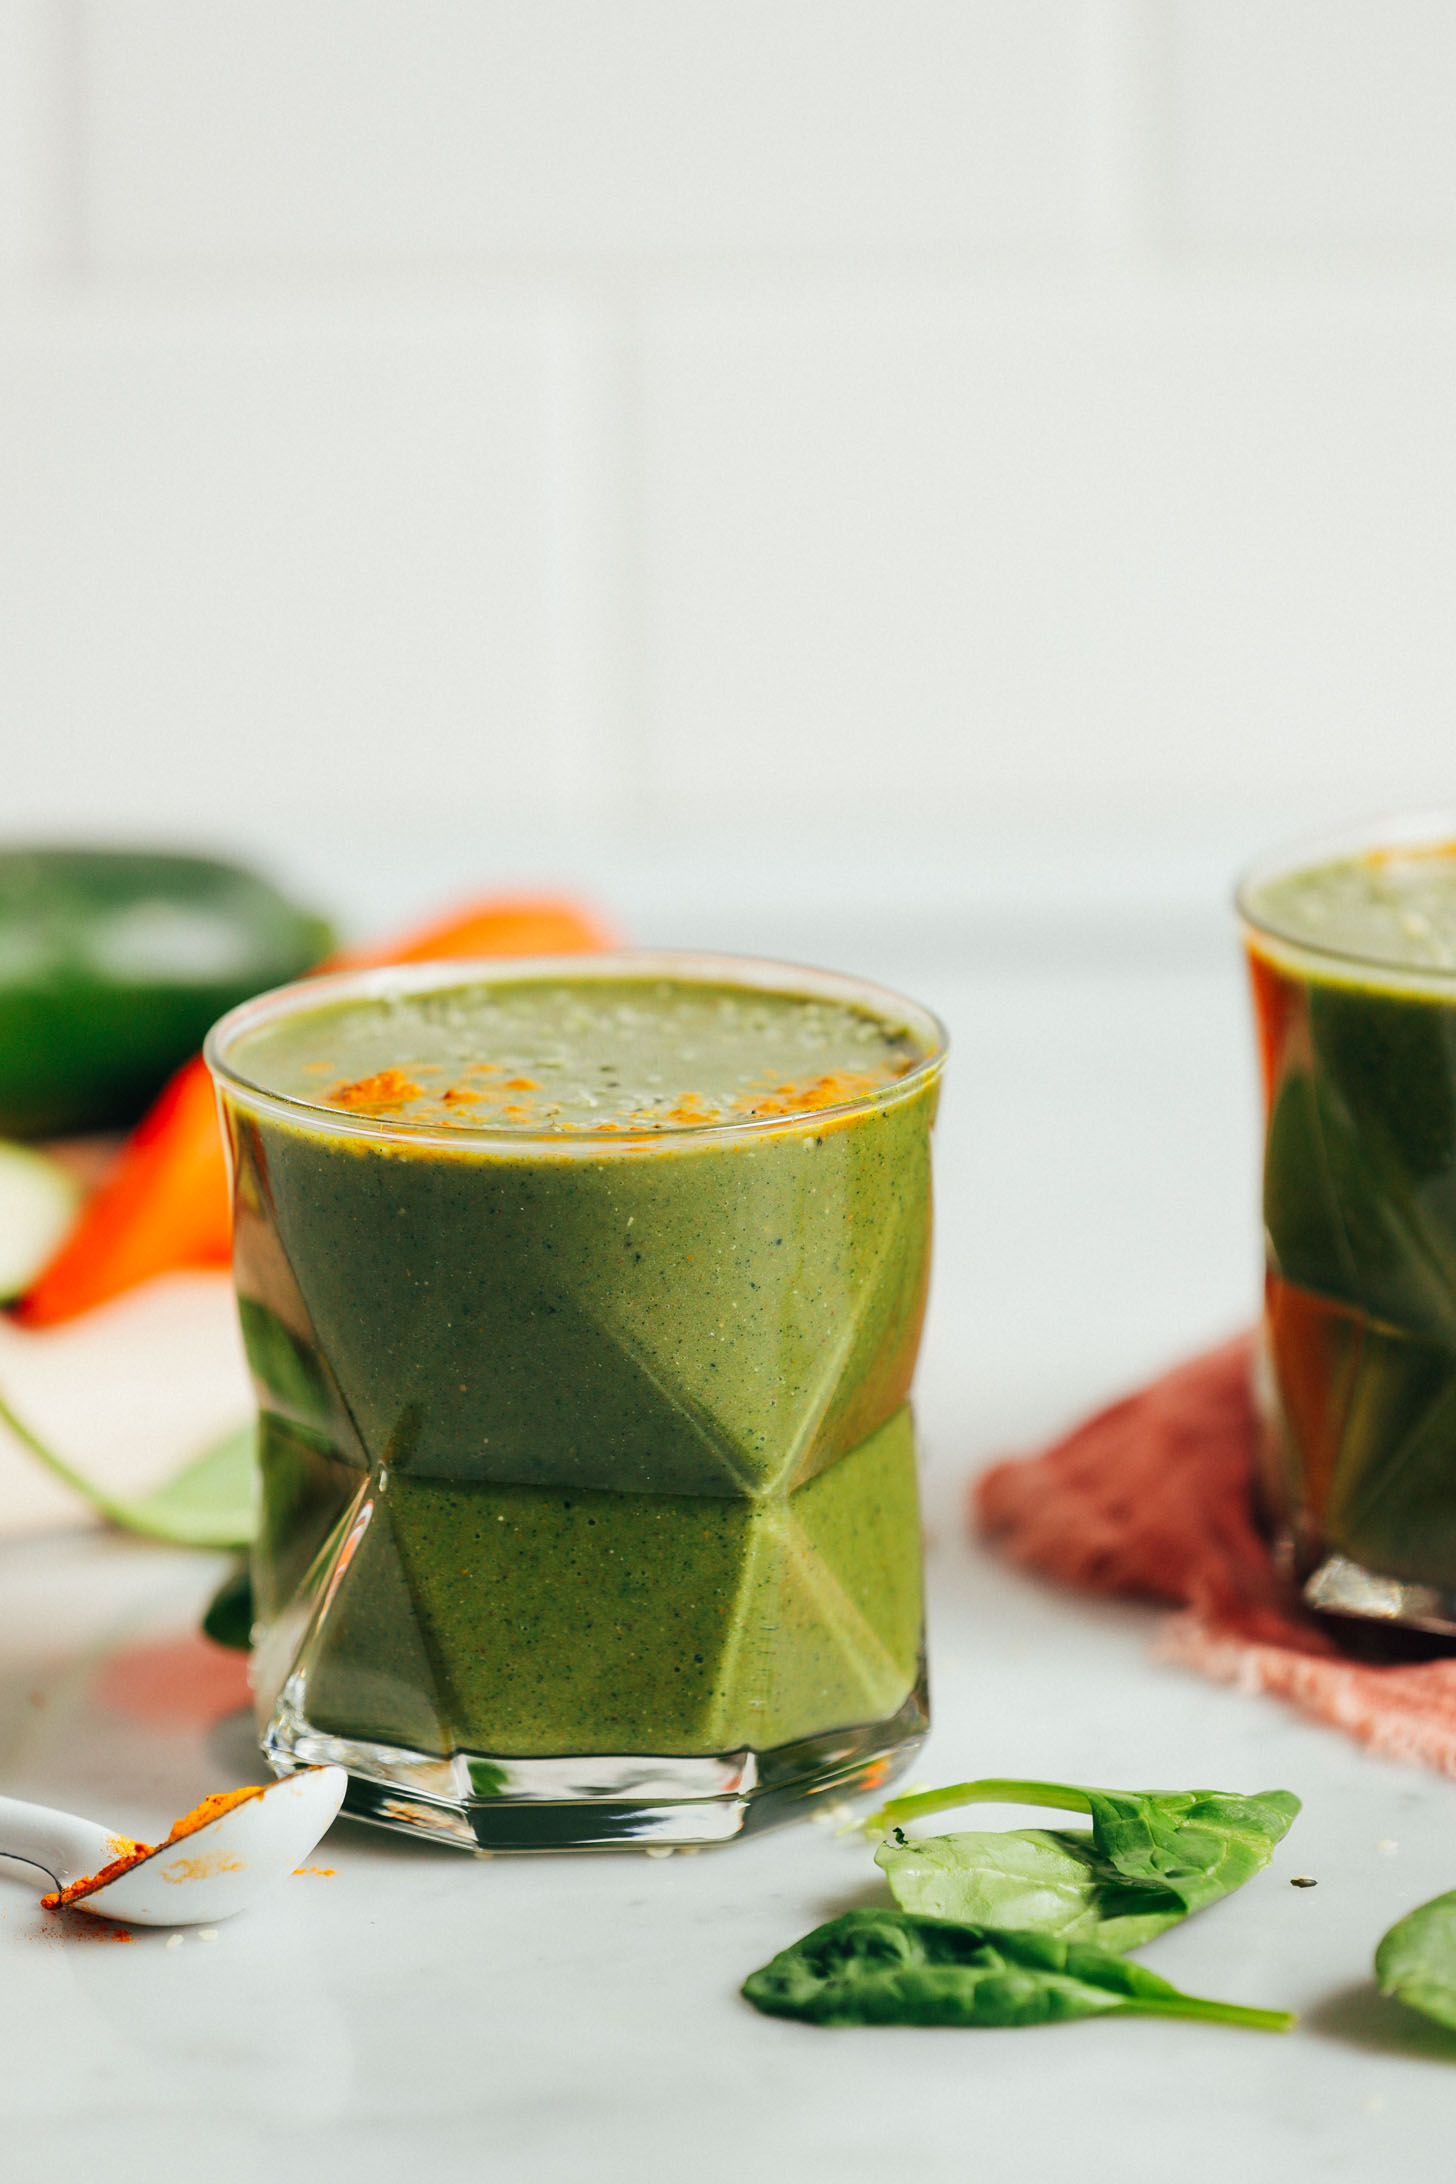 Parallel image of warming winter green smoothie with spinach and turmeric garnish